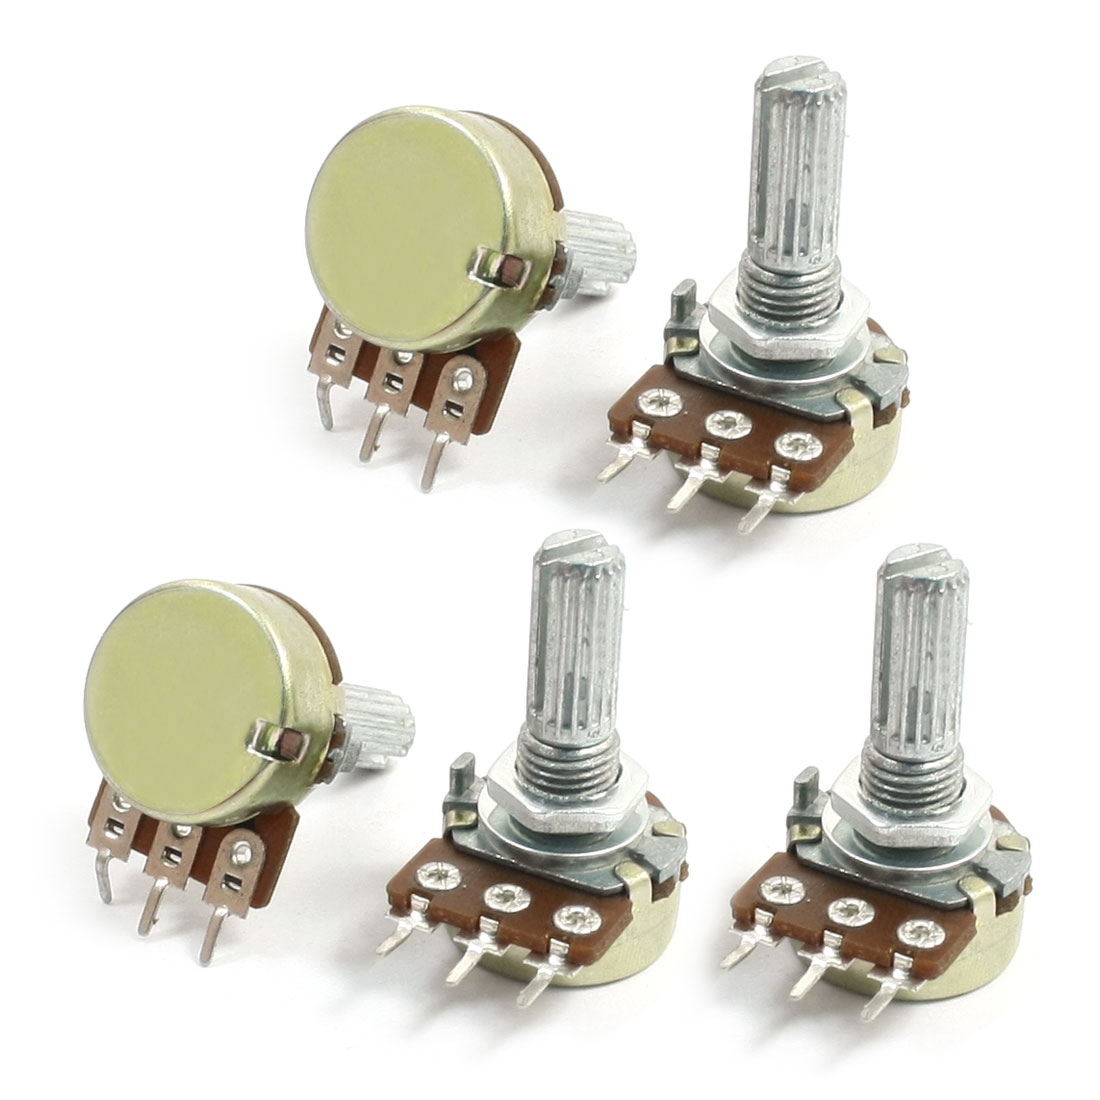 5Pcs B Type Top Adjustment Electric Guitar Potentiometer 50K ohm